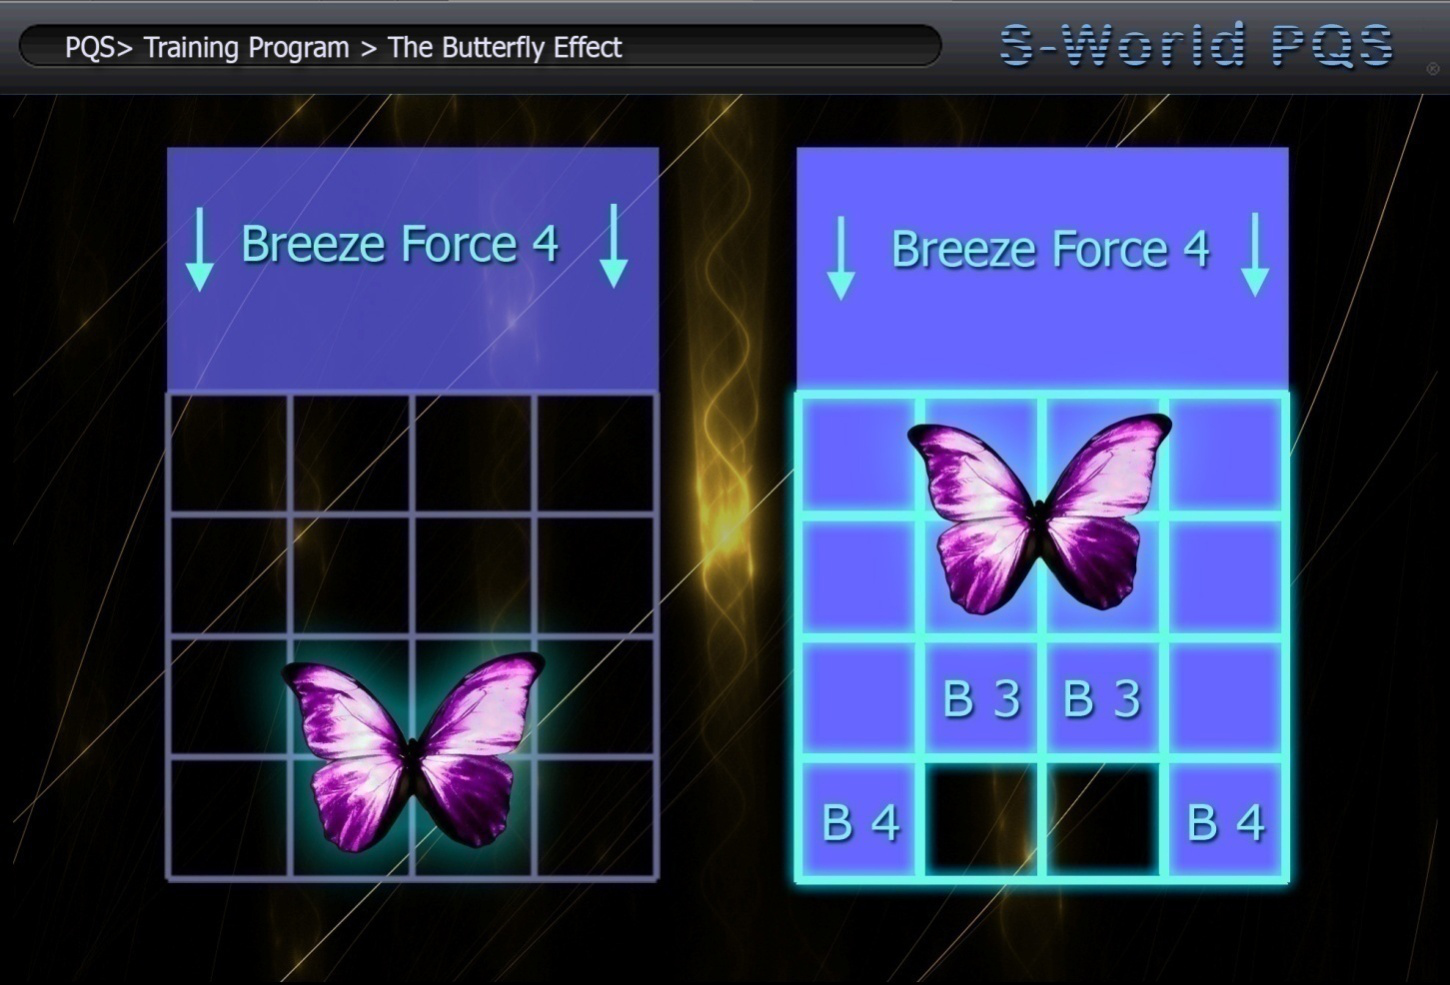 training-program-the-butterfly-effect